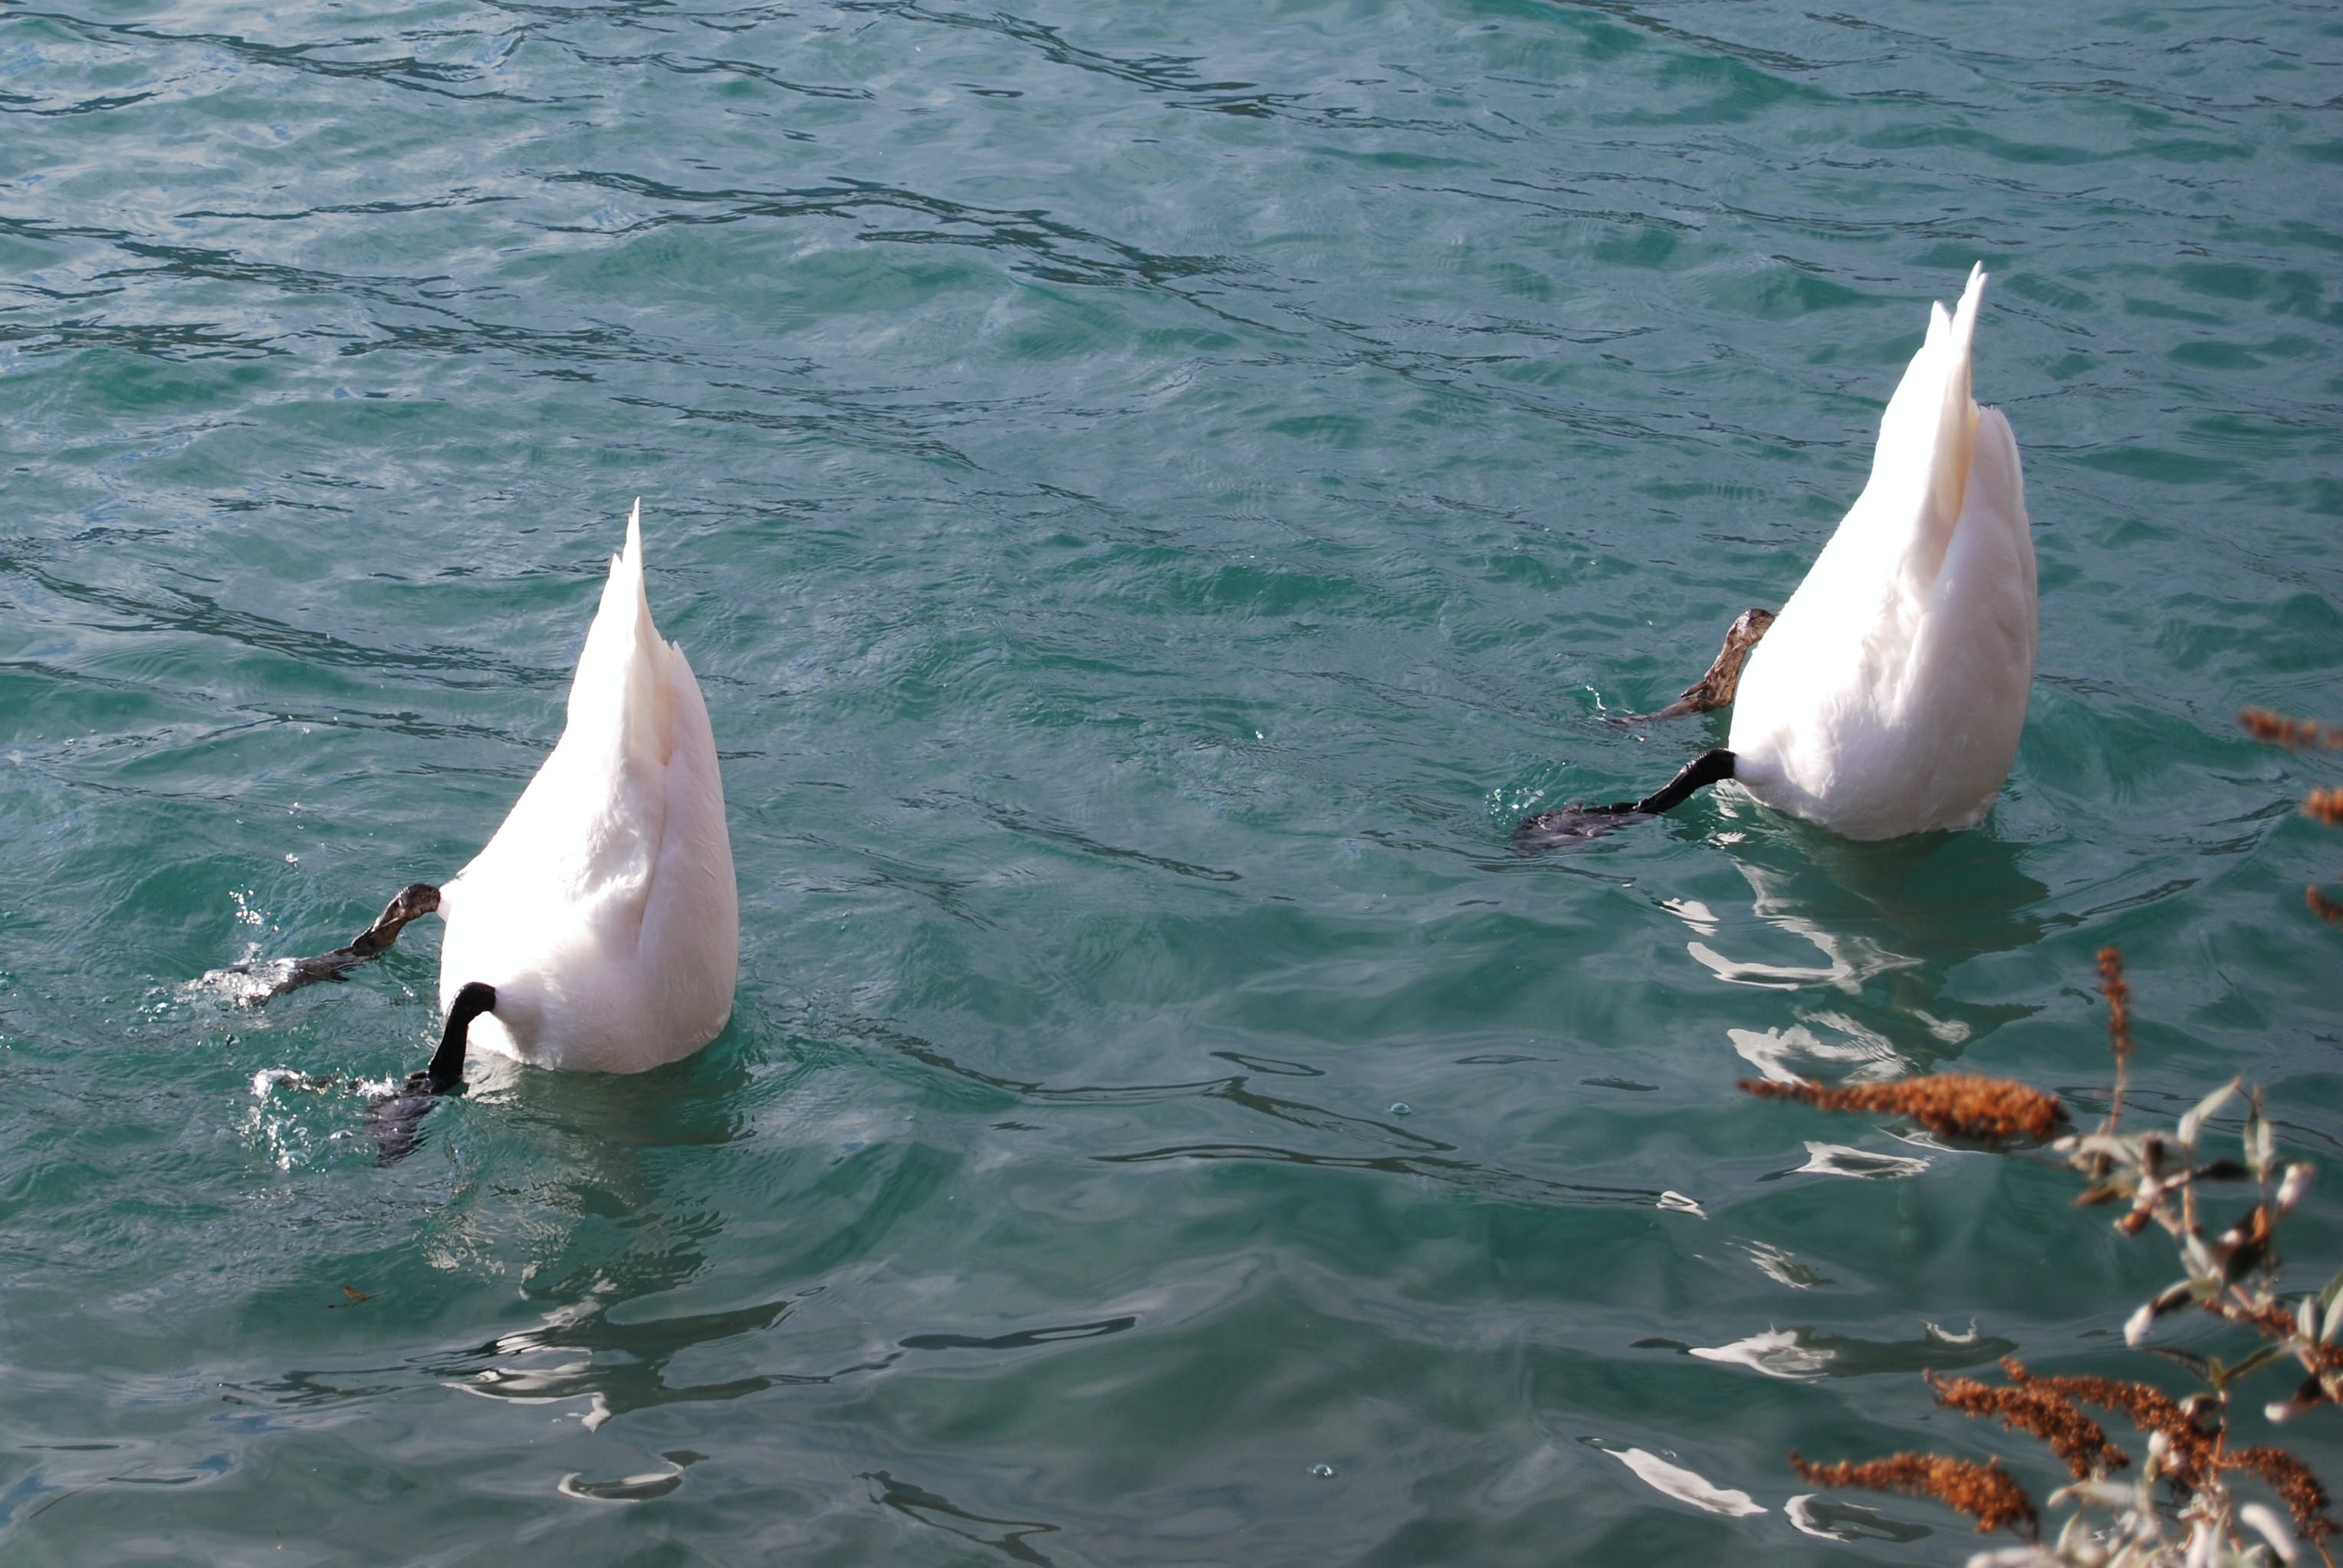 Two White Feathered Animals With Head Under Water and Body Above Water